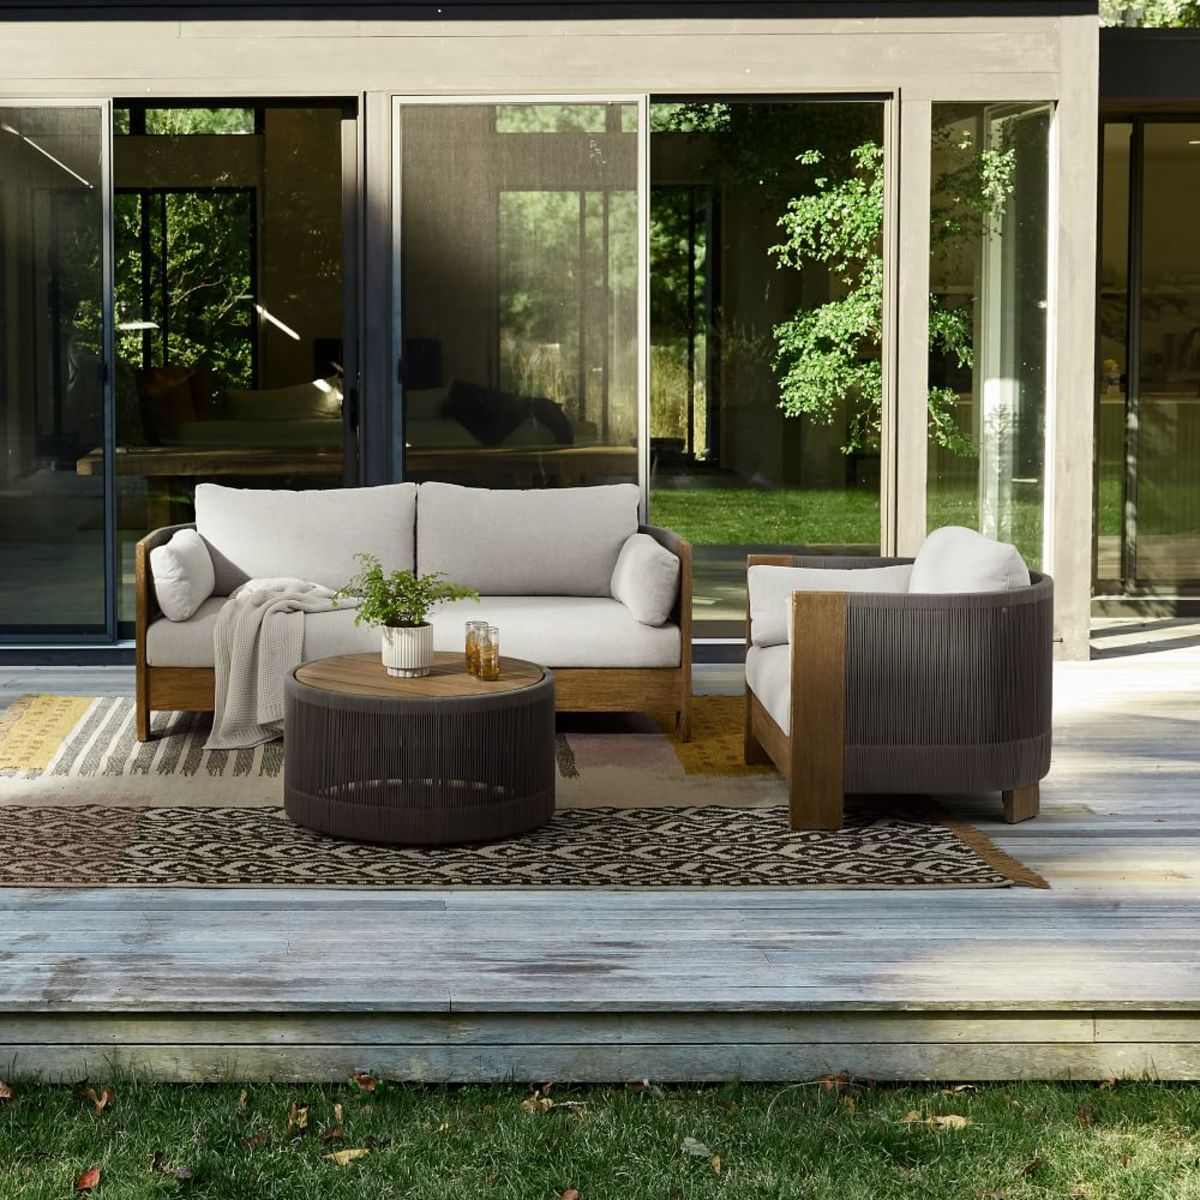 The the cushioned couches and armchairs that are deck-smart faux wicker and teak.